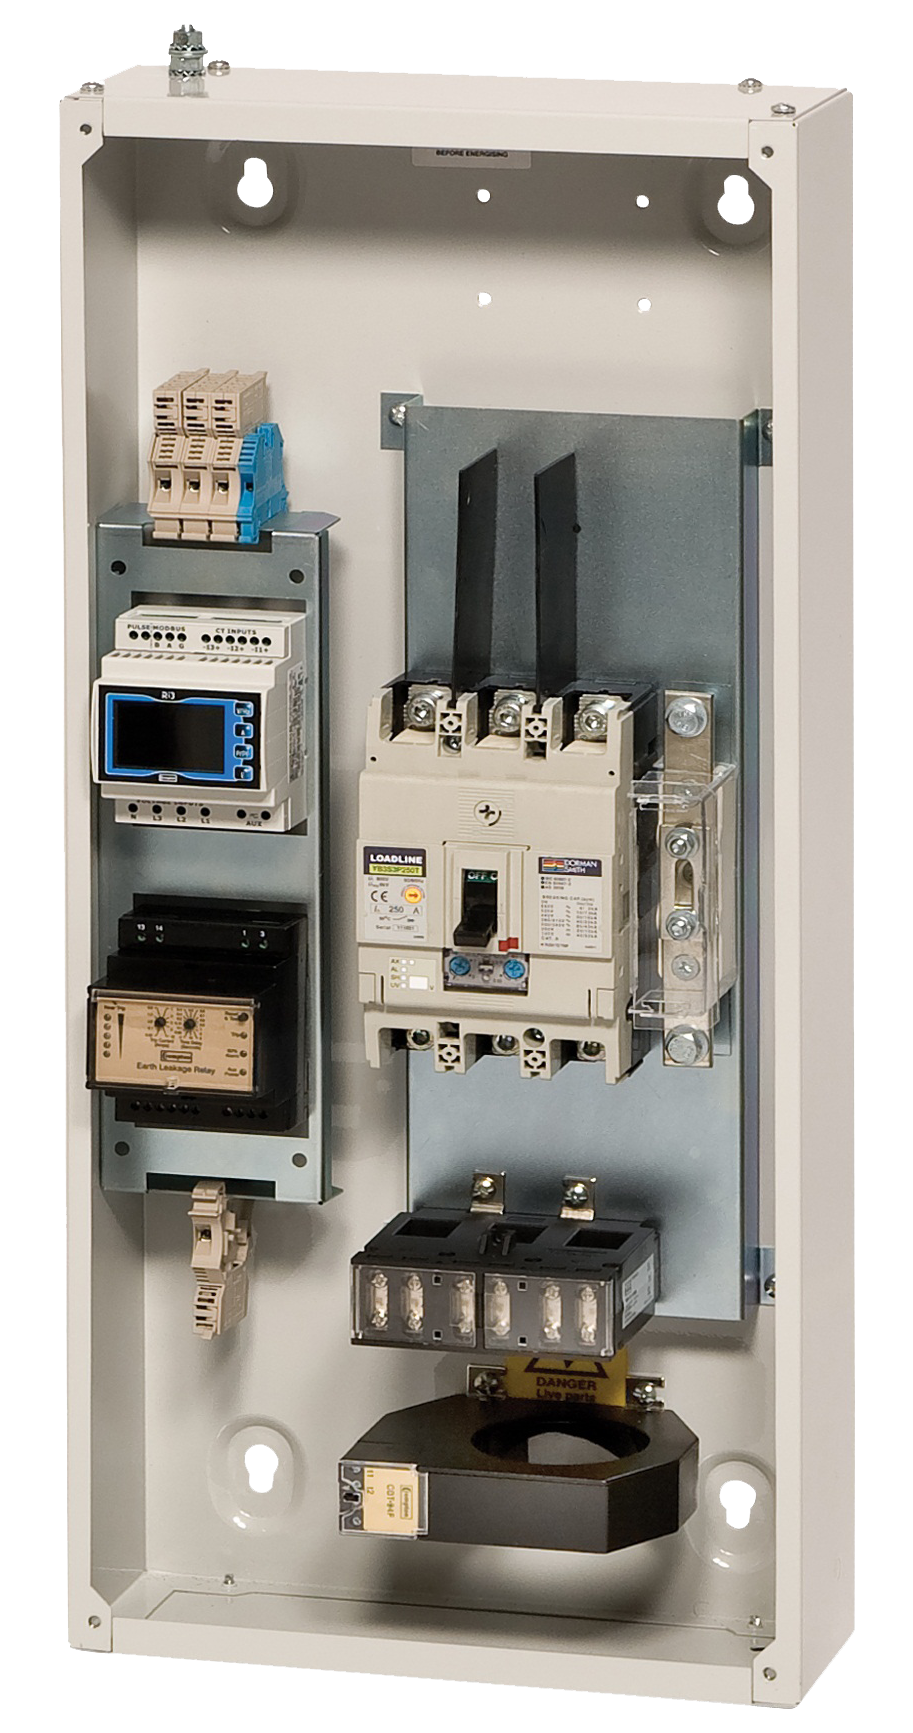 home dorman smith switchgear now available for 16a to 1000a option for integral metering earth leakage protection and mounting of current transformers